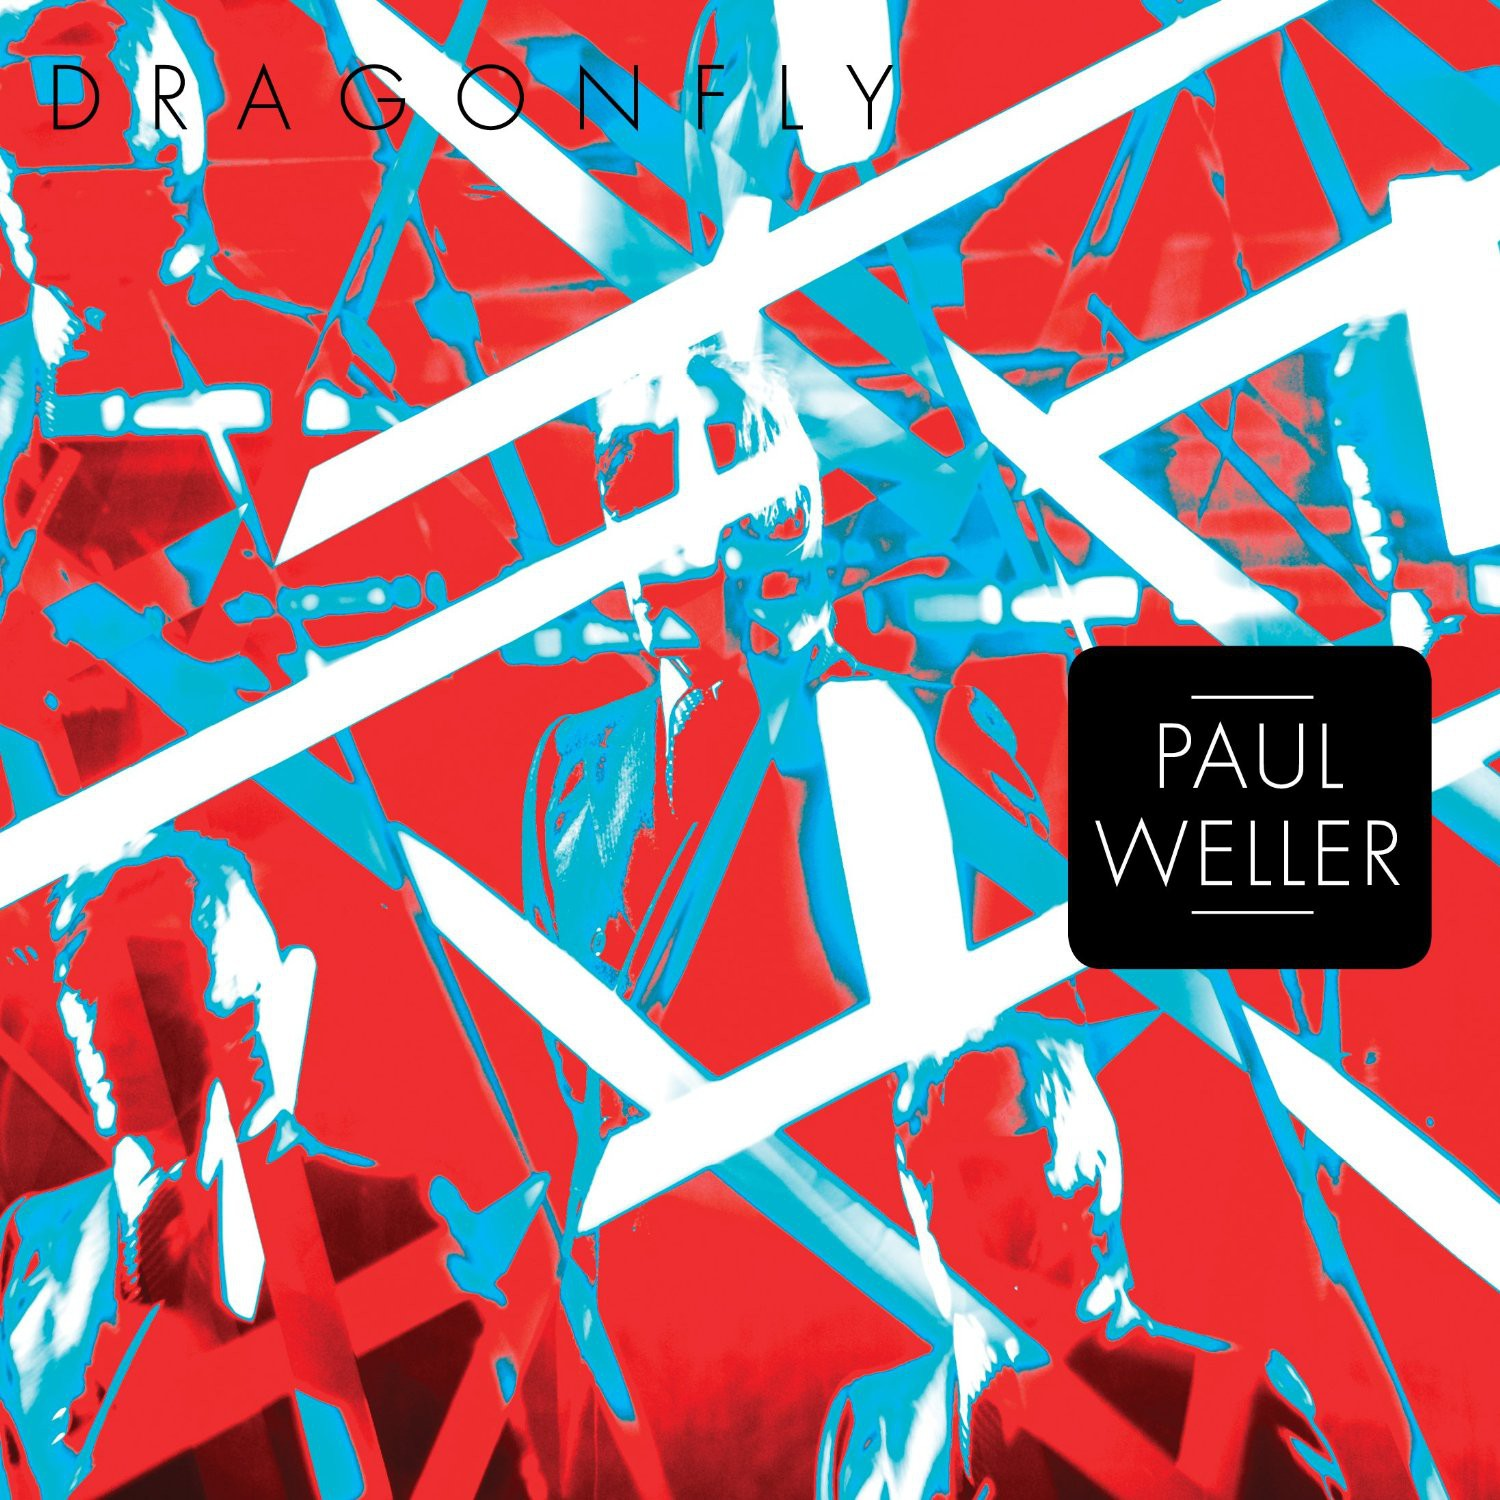 Paul Weller - Dragonfly - 7""